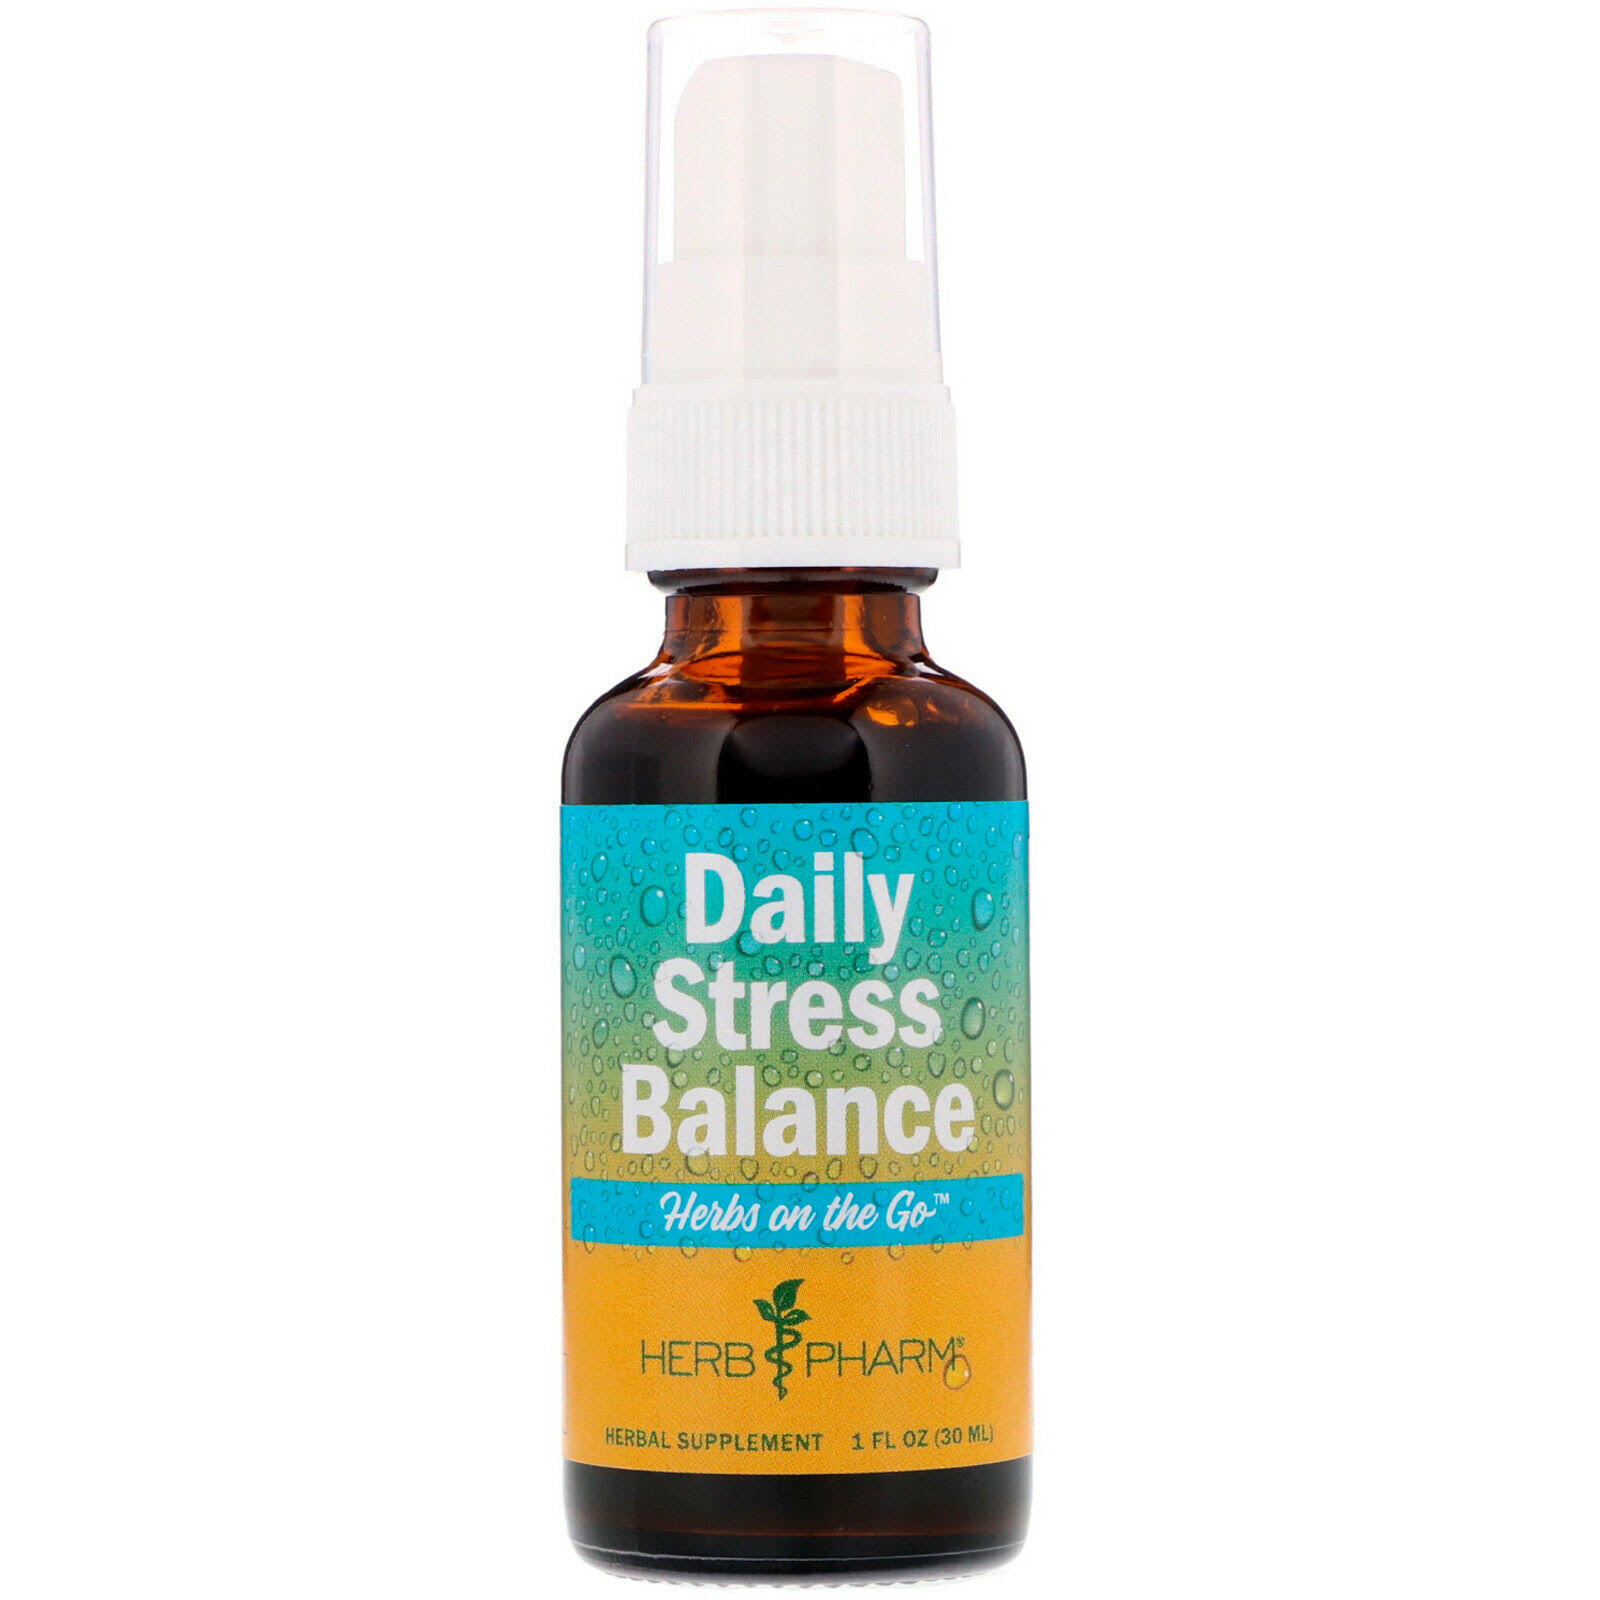 Herb Pharm Herbs On the Go Daily Stress Balance Spray - 1oz